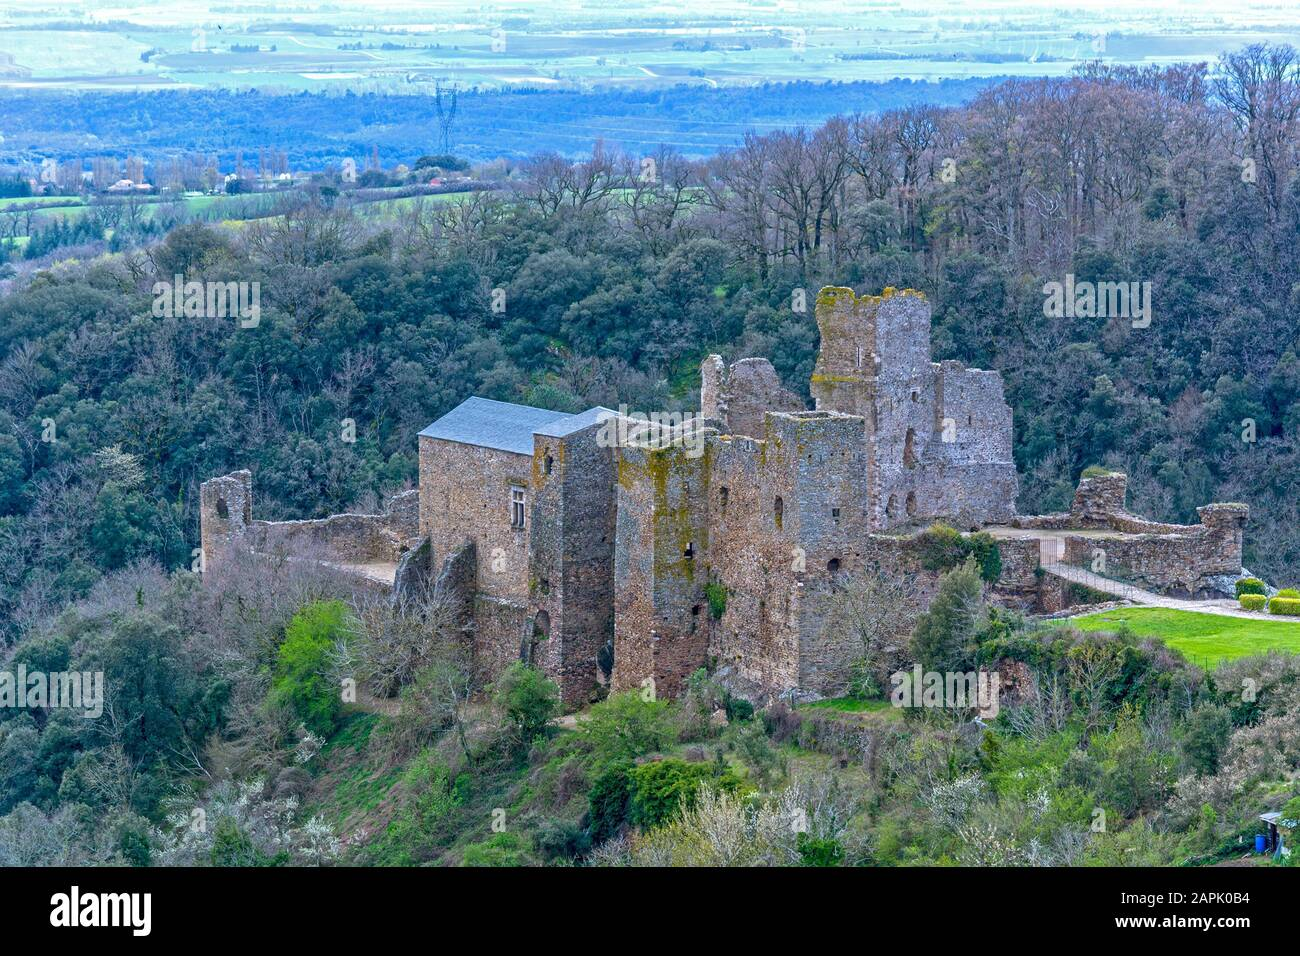 Cathar Castles High Resolution Stock Photography and Images   Alamy